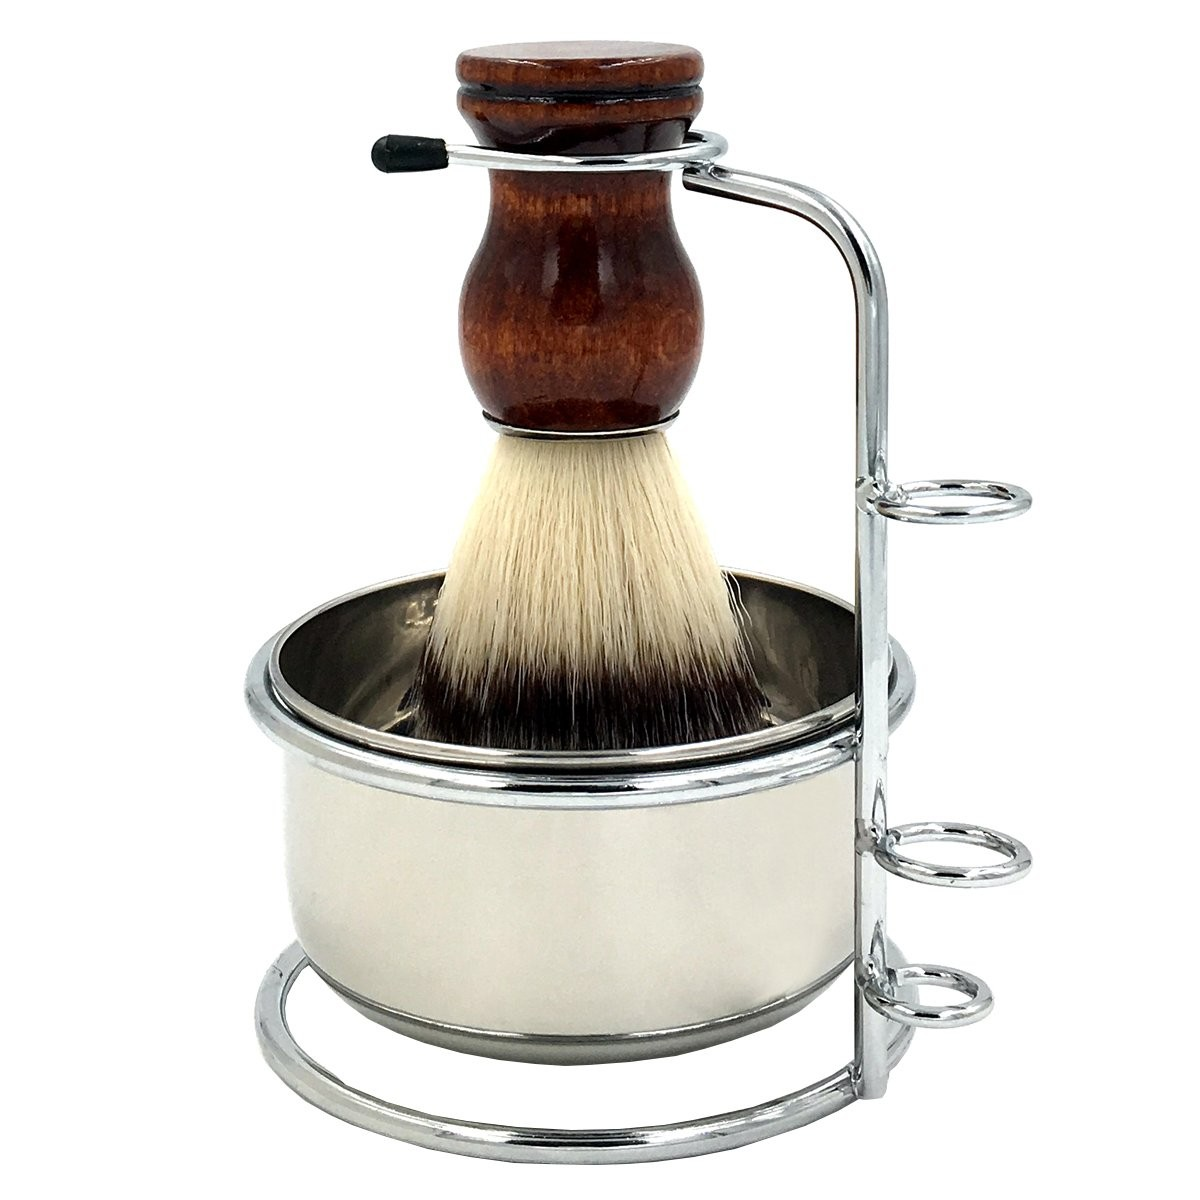 PerPro Mens Shaving Grooming Sets, Beautiful Stainless Steel Shave Bowl and Shaving Stand Brush